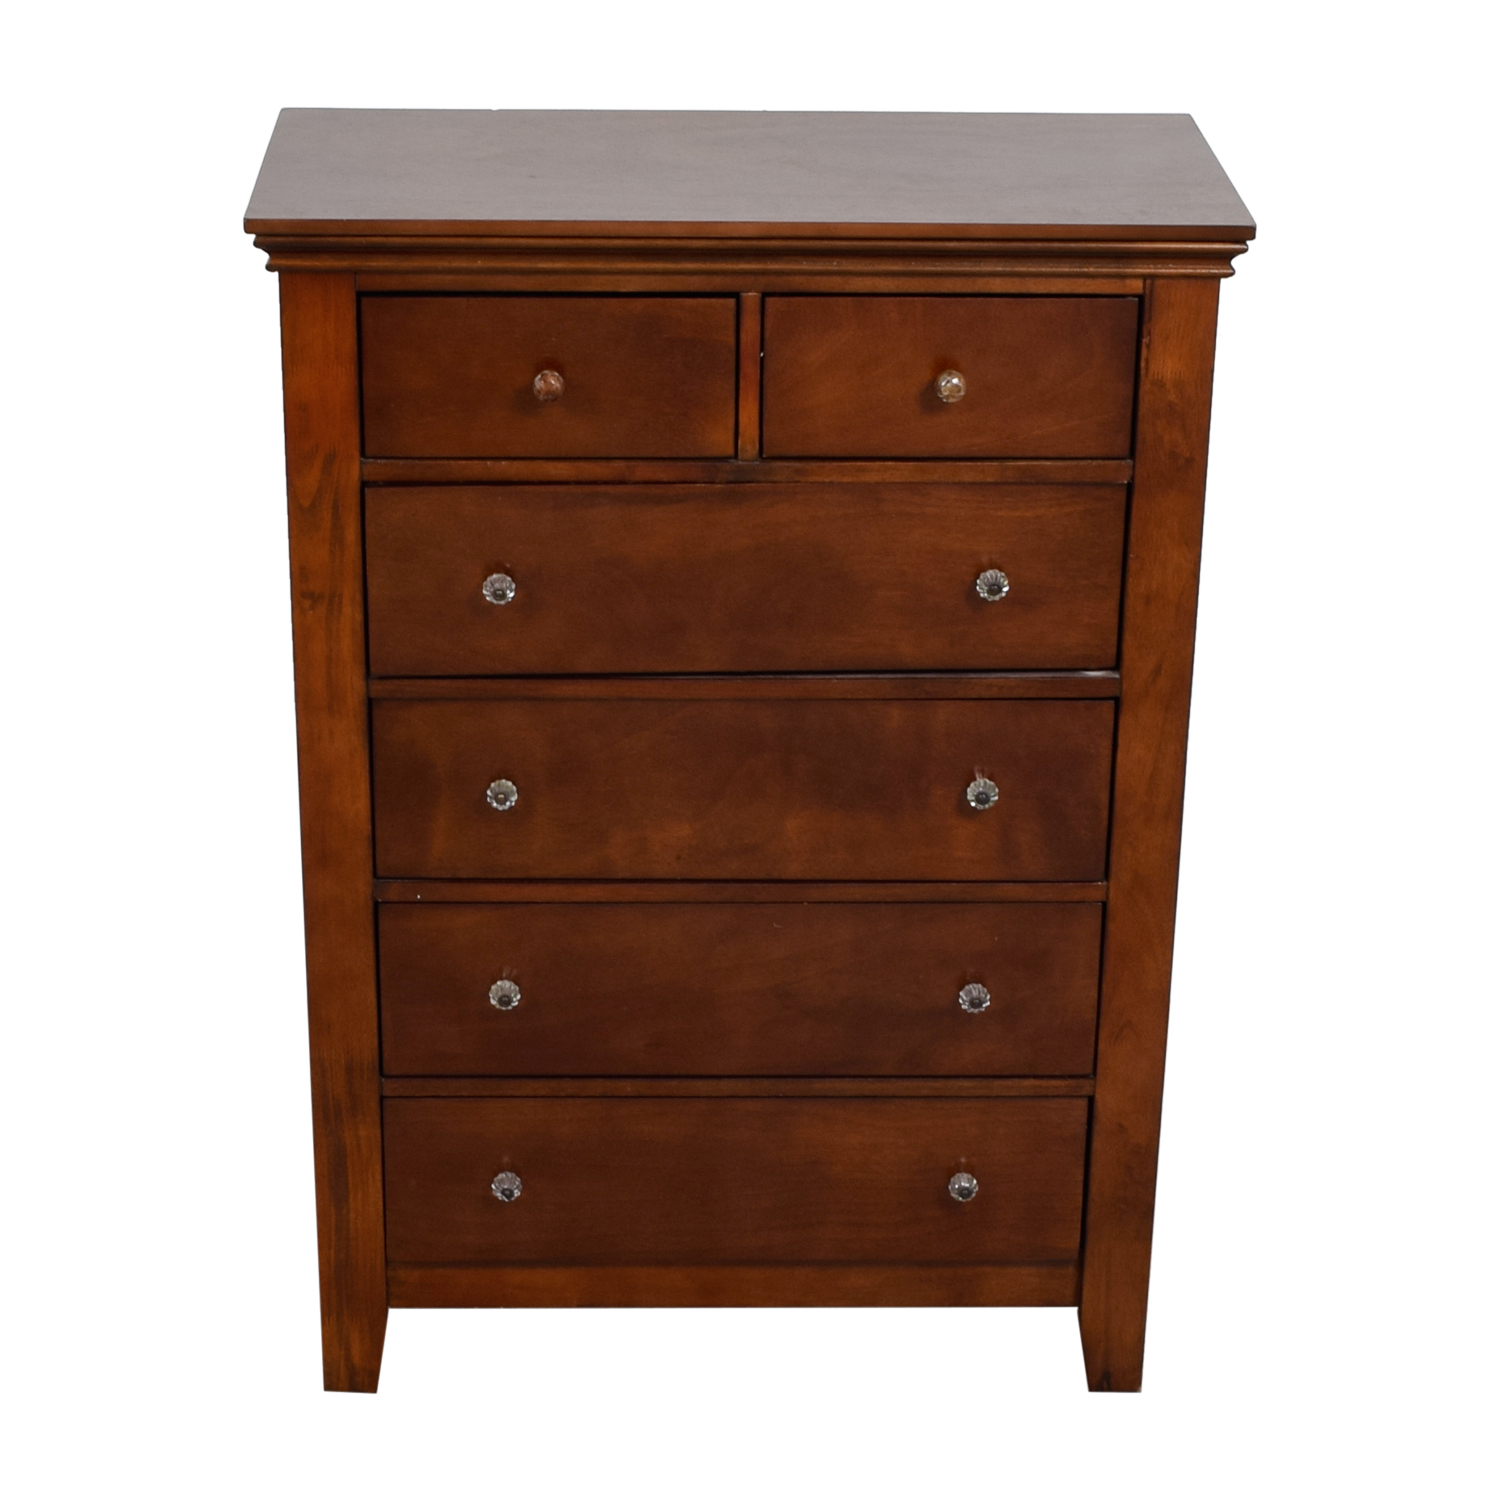 buy  Wood Six-Drawer Dresser online